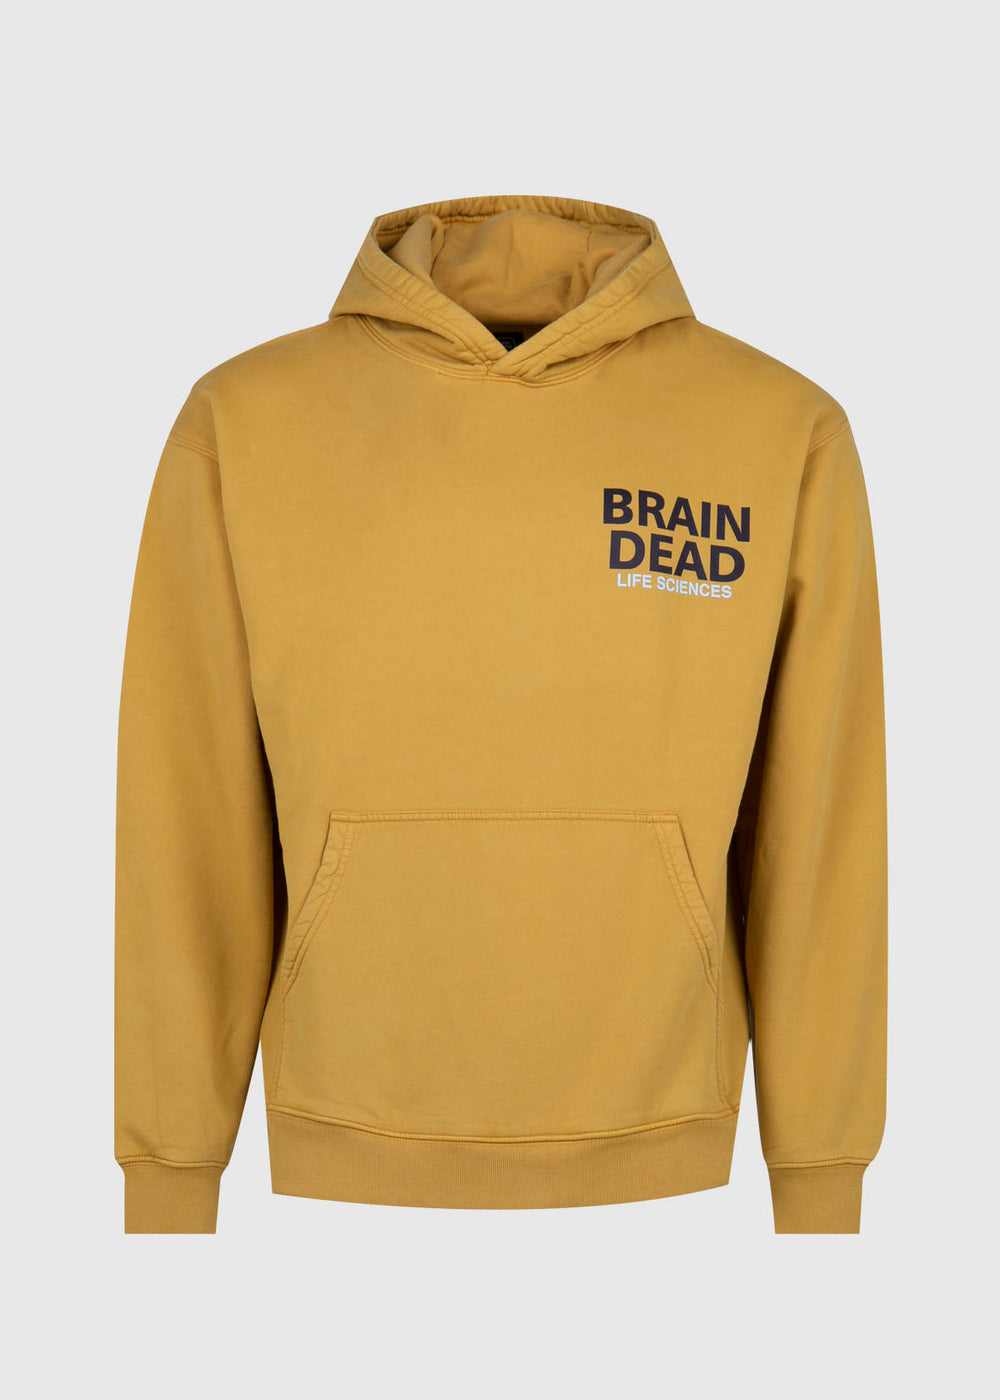 hooded-sweatshirt-1